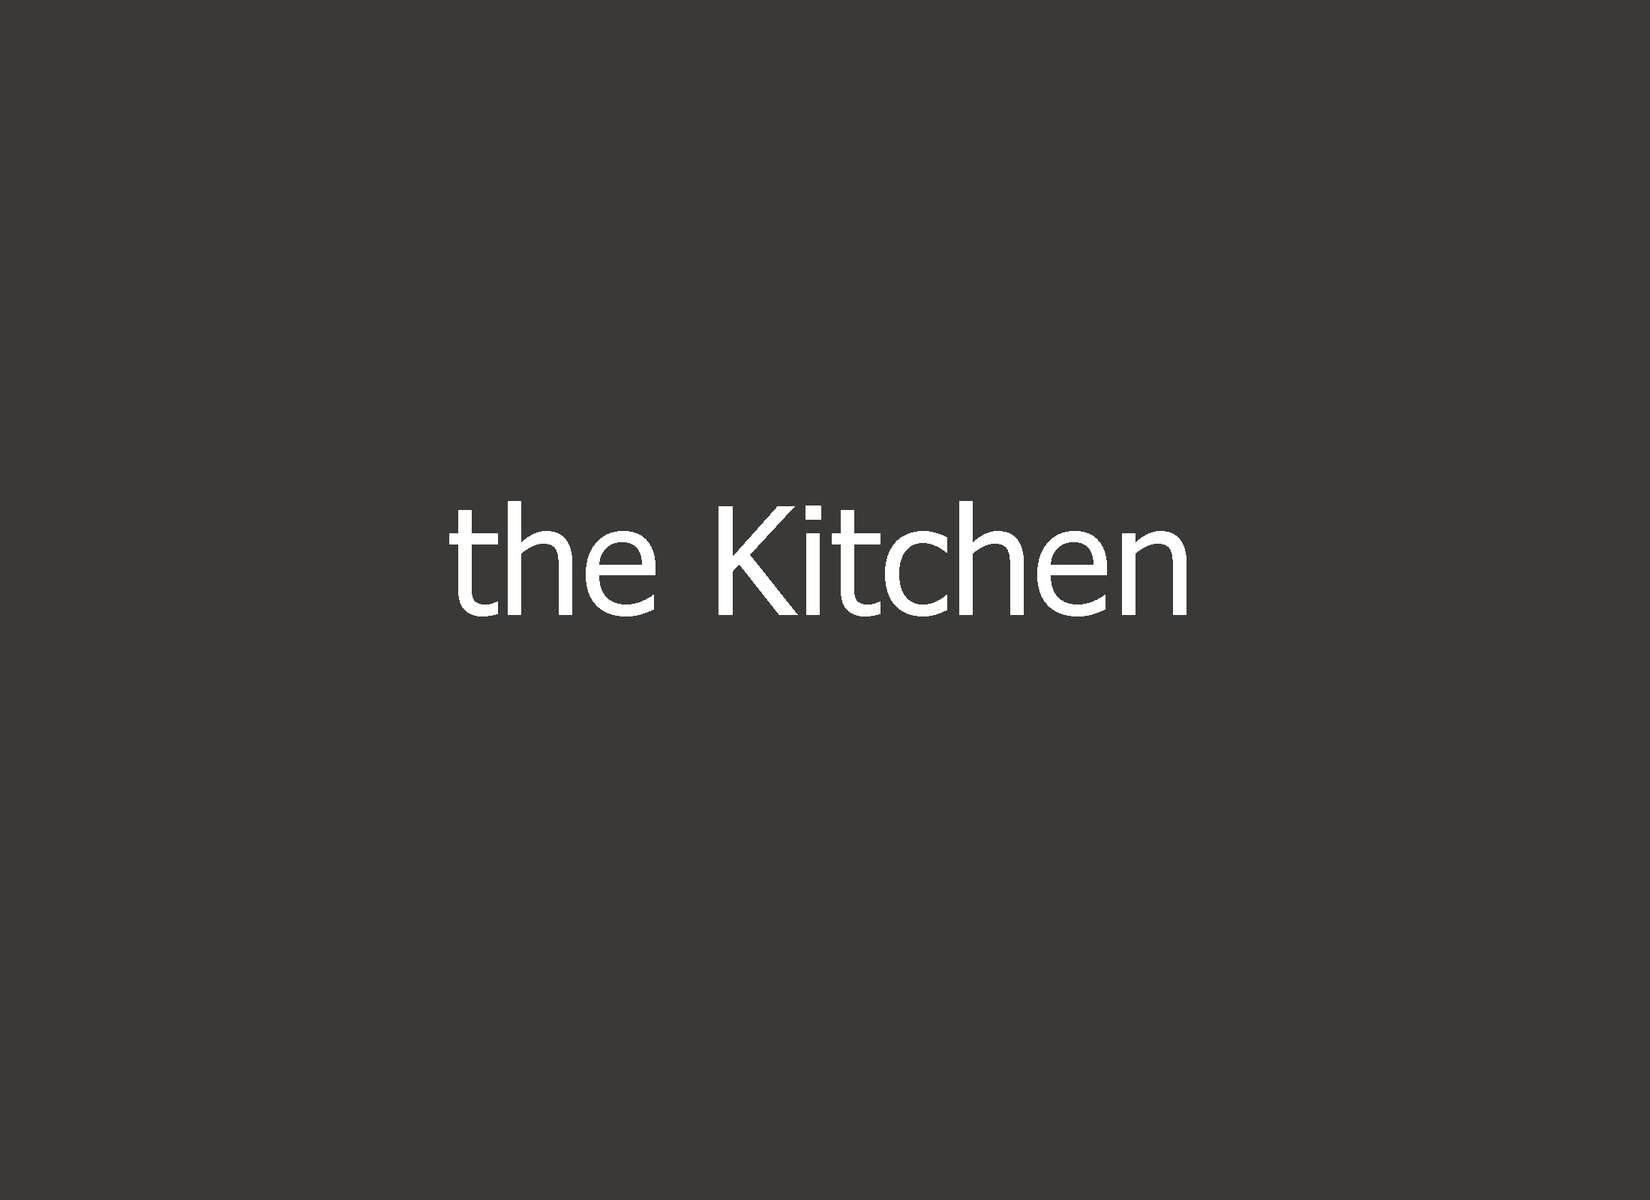 kitchen_text